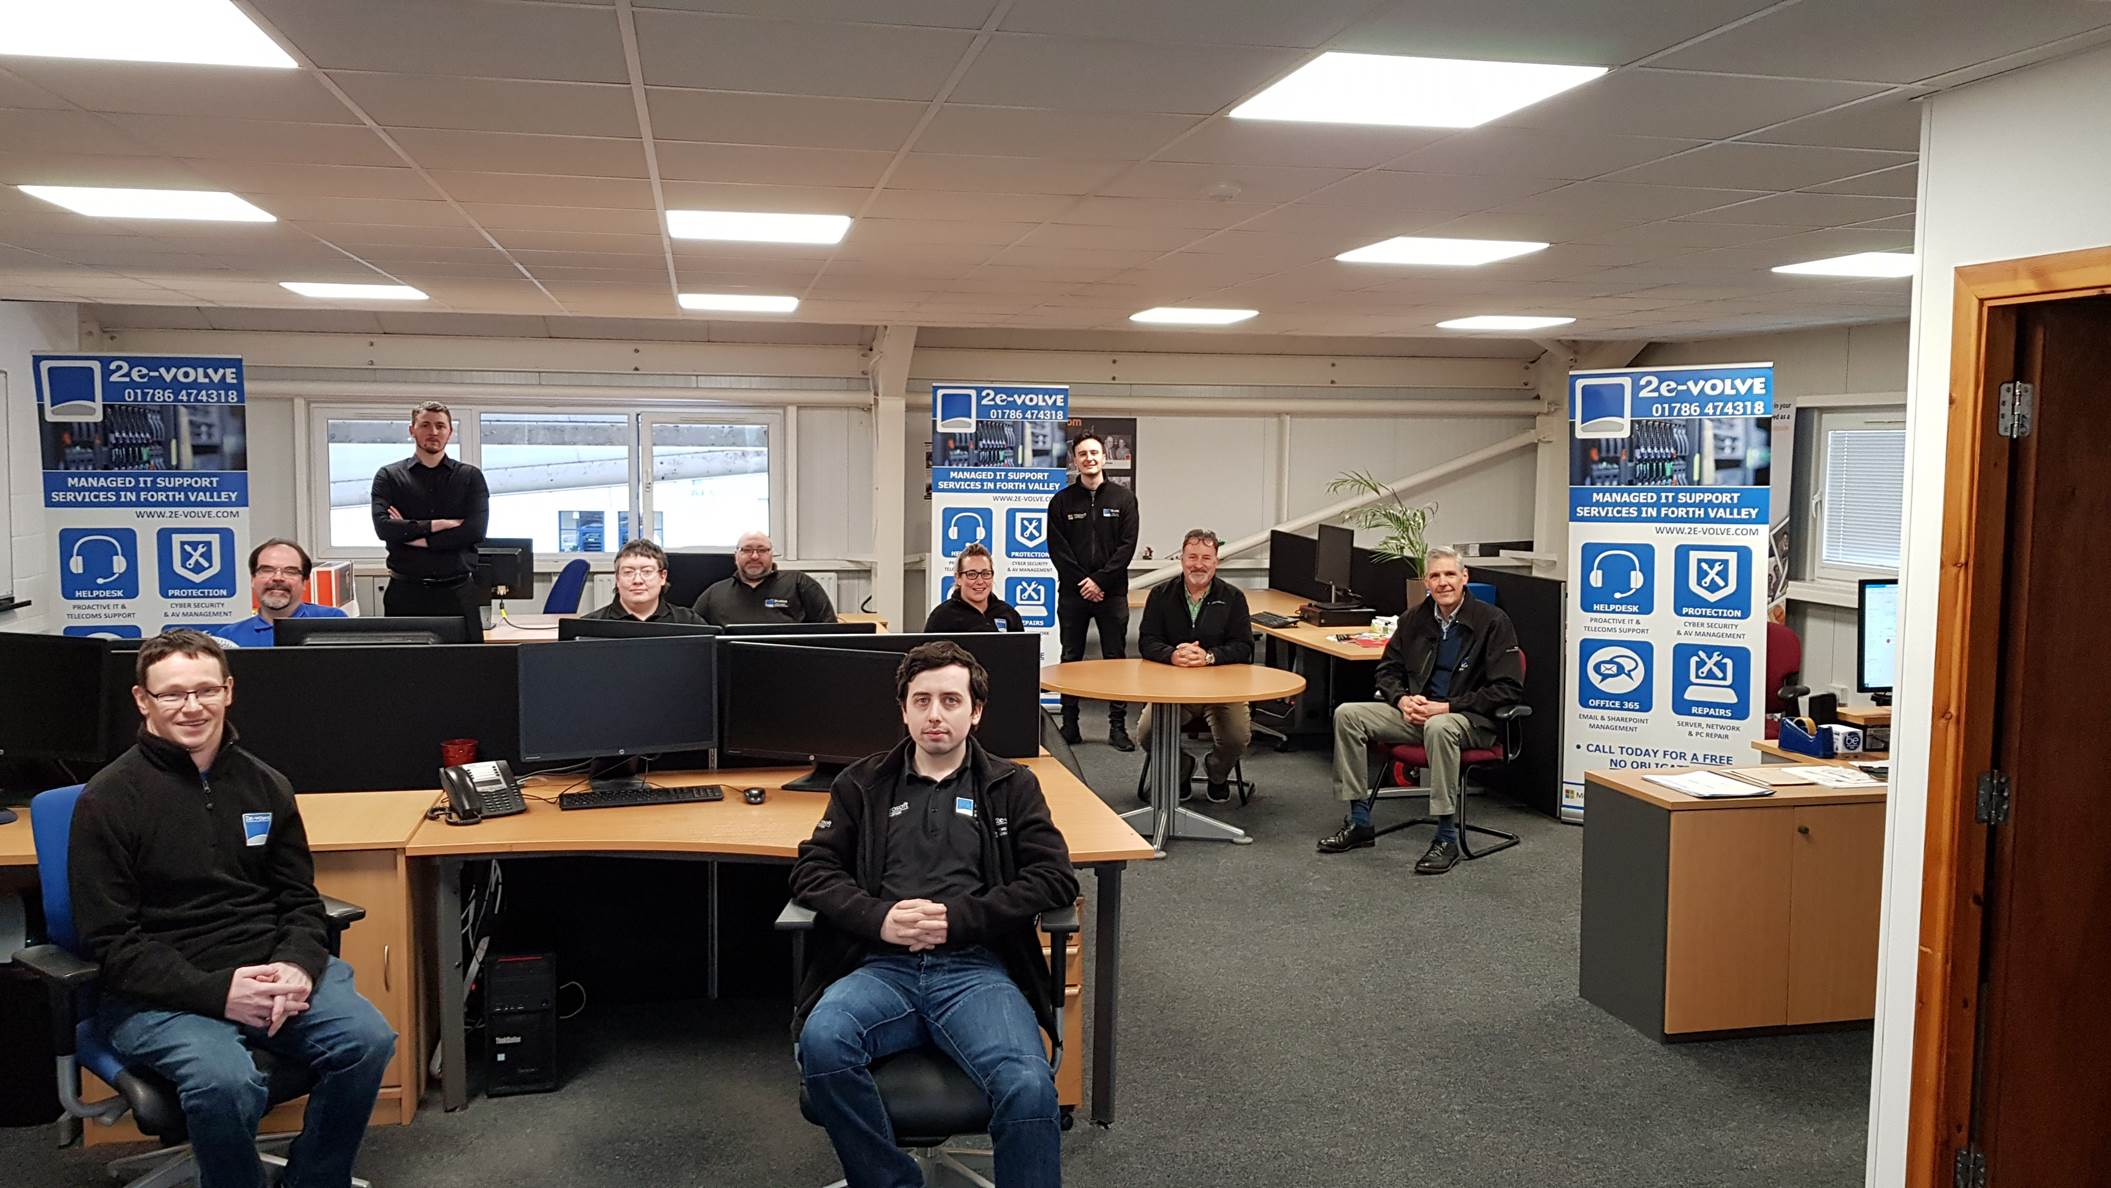 Group image of IT Services firm 2e-volve in its Stirling offices